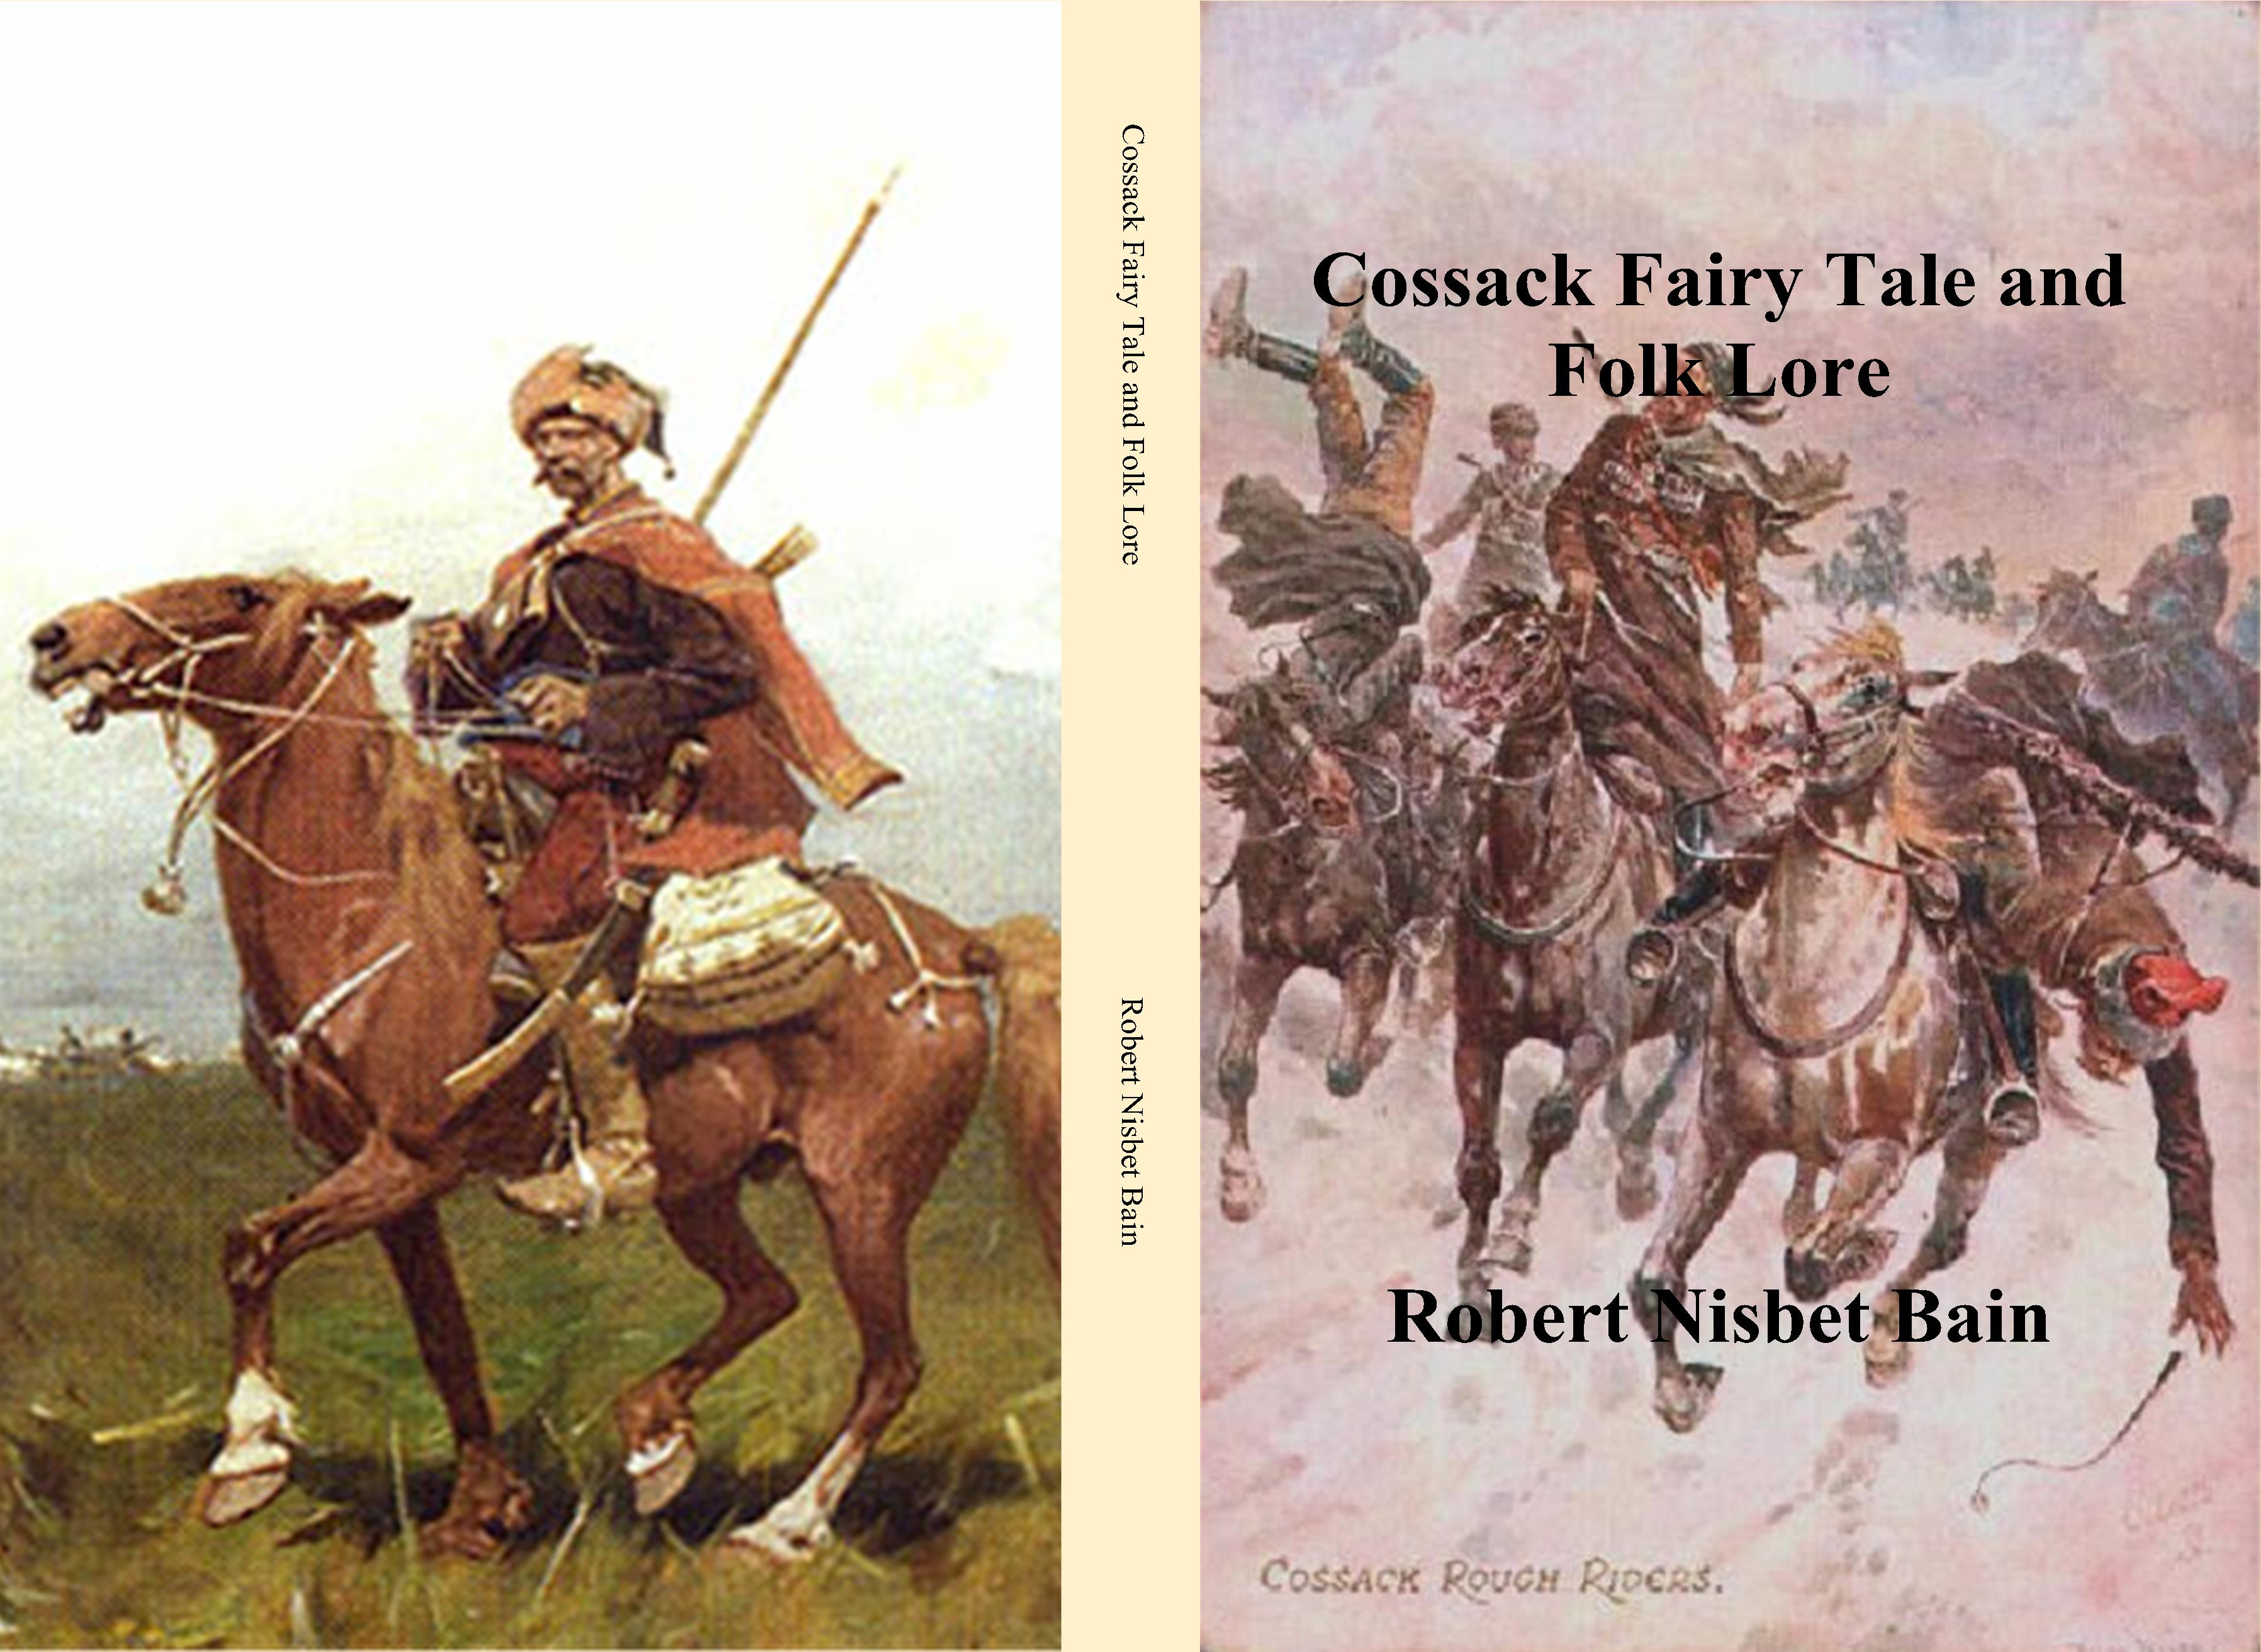 Cossack Fairy Tale and Folk Lore cover image